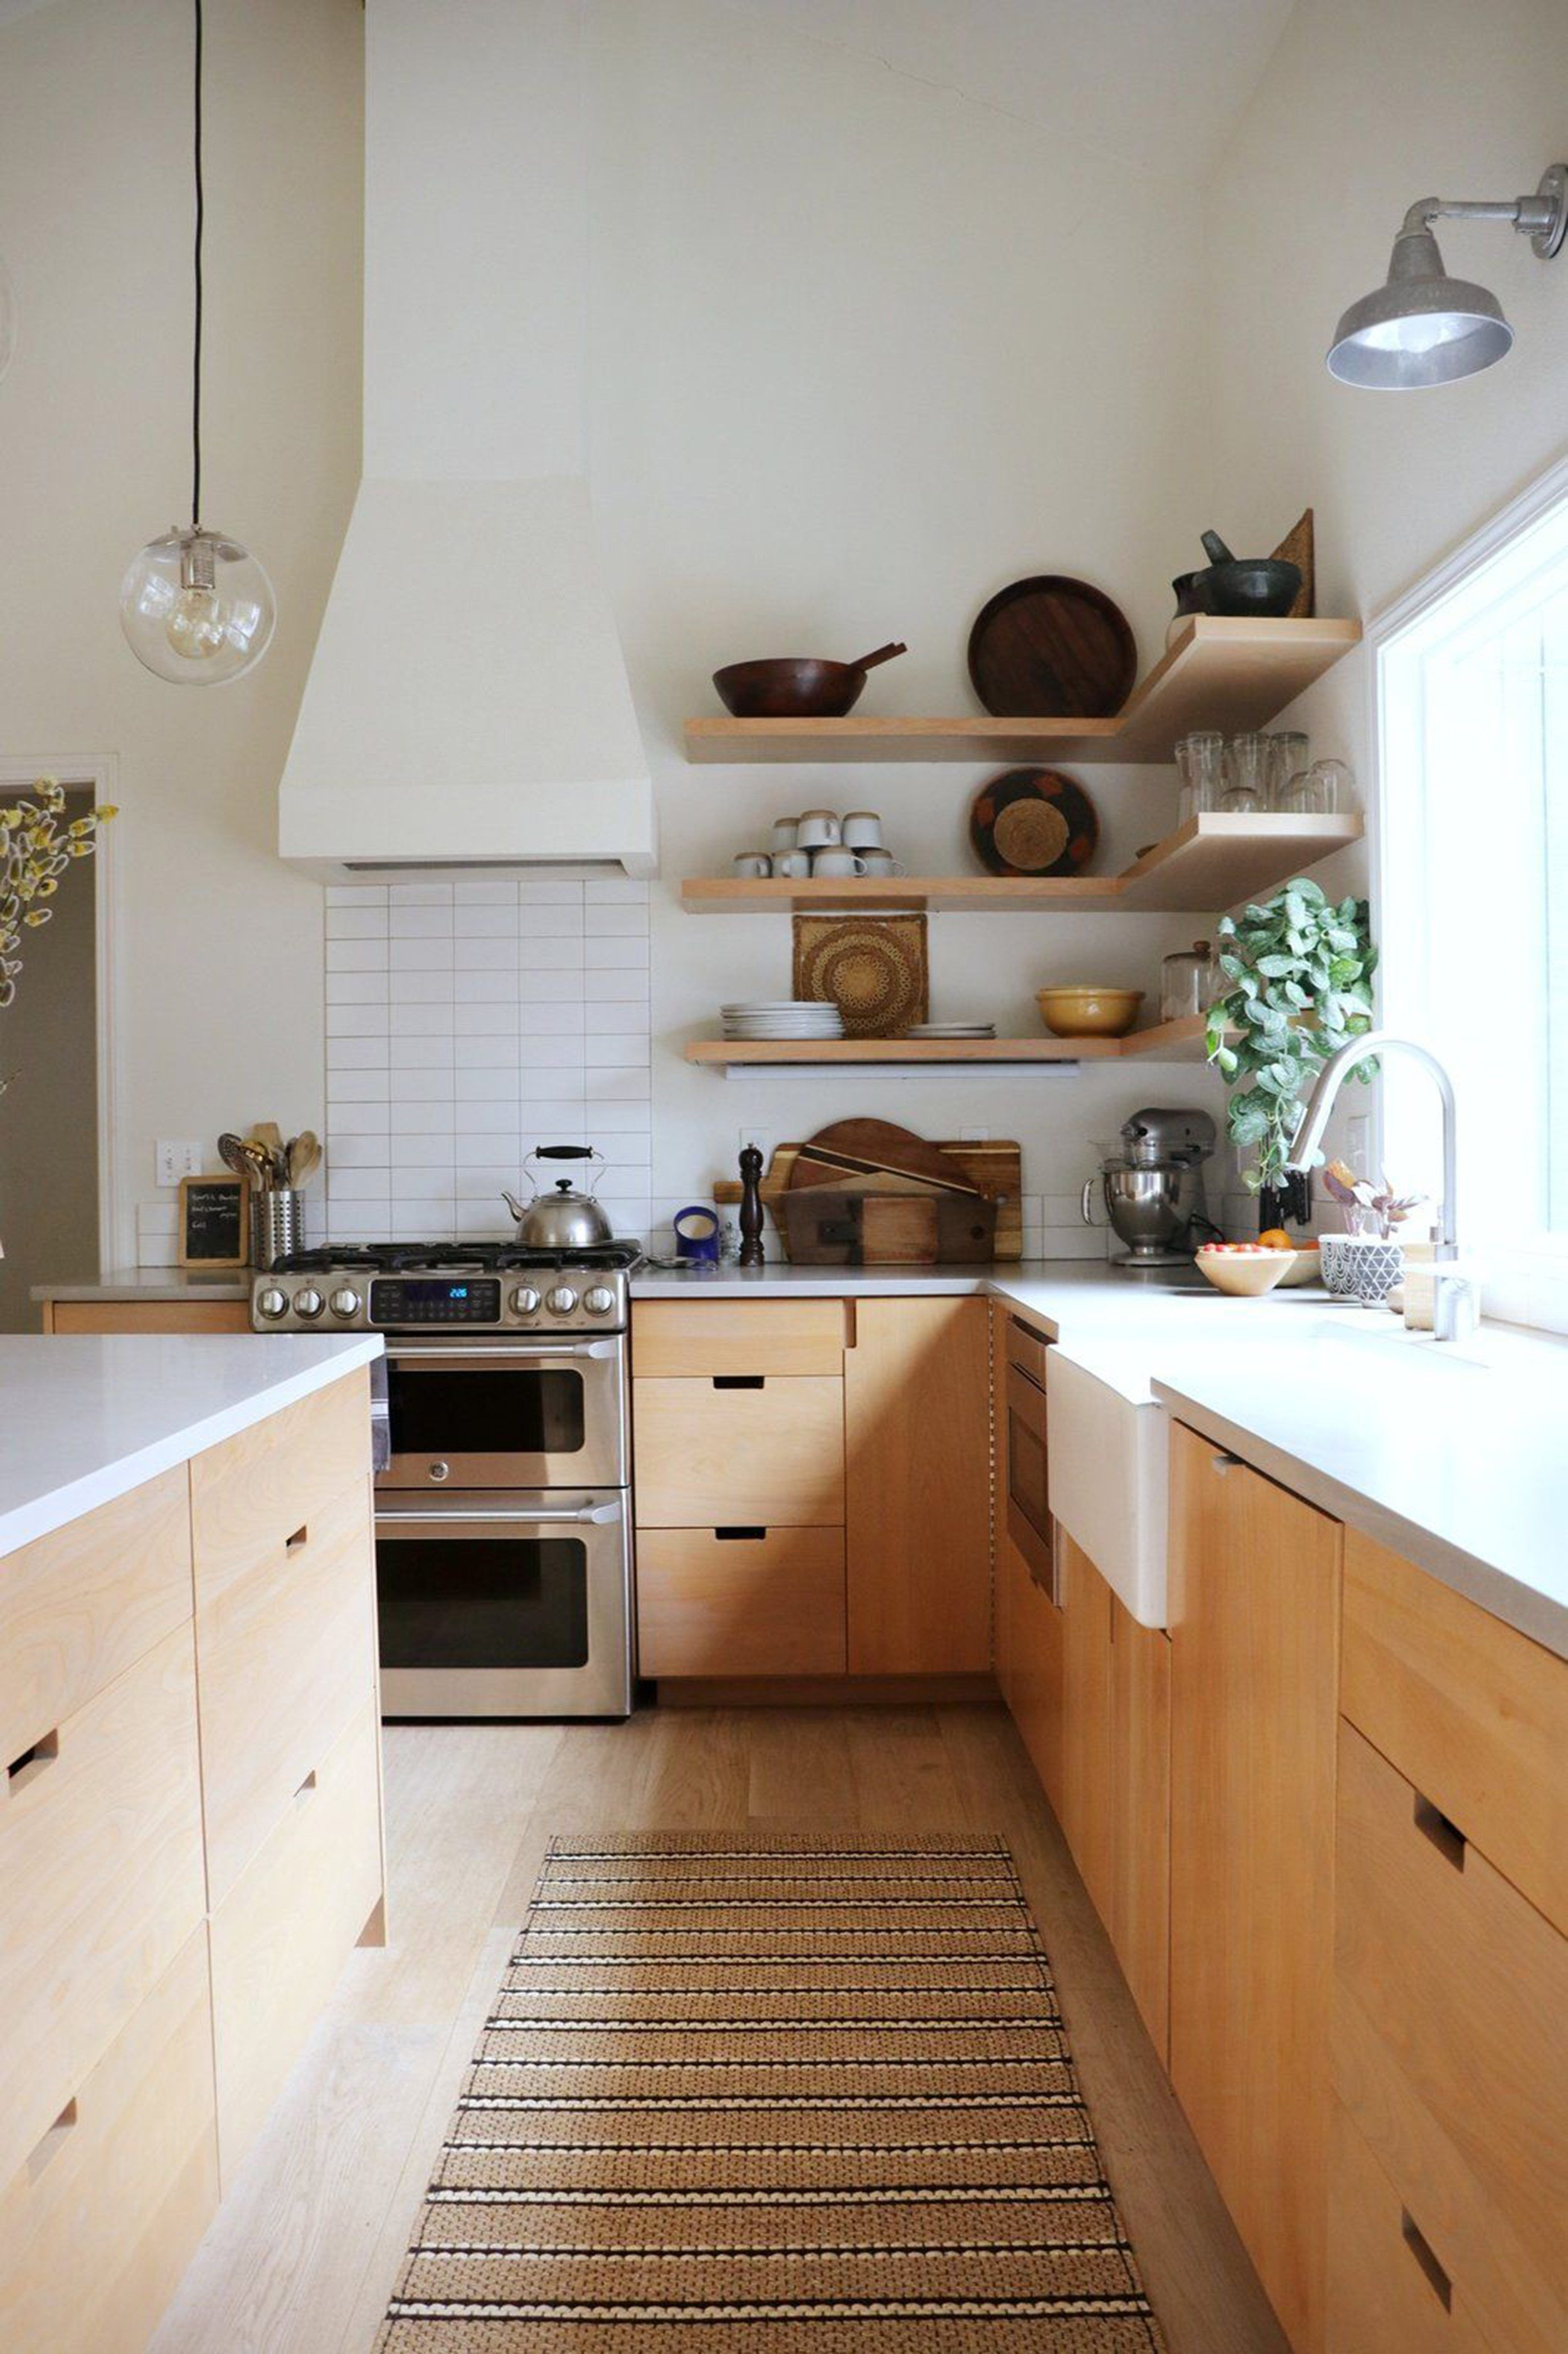 Is No Hardware The New Hardware Trend For Kitchens Kitchen